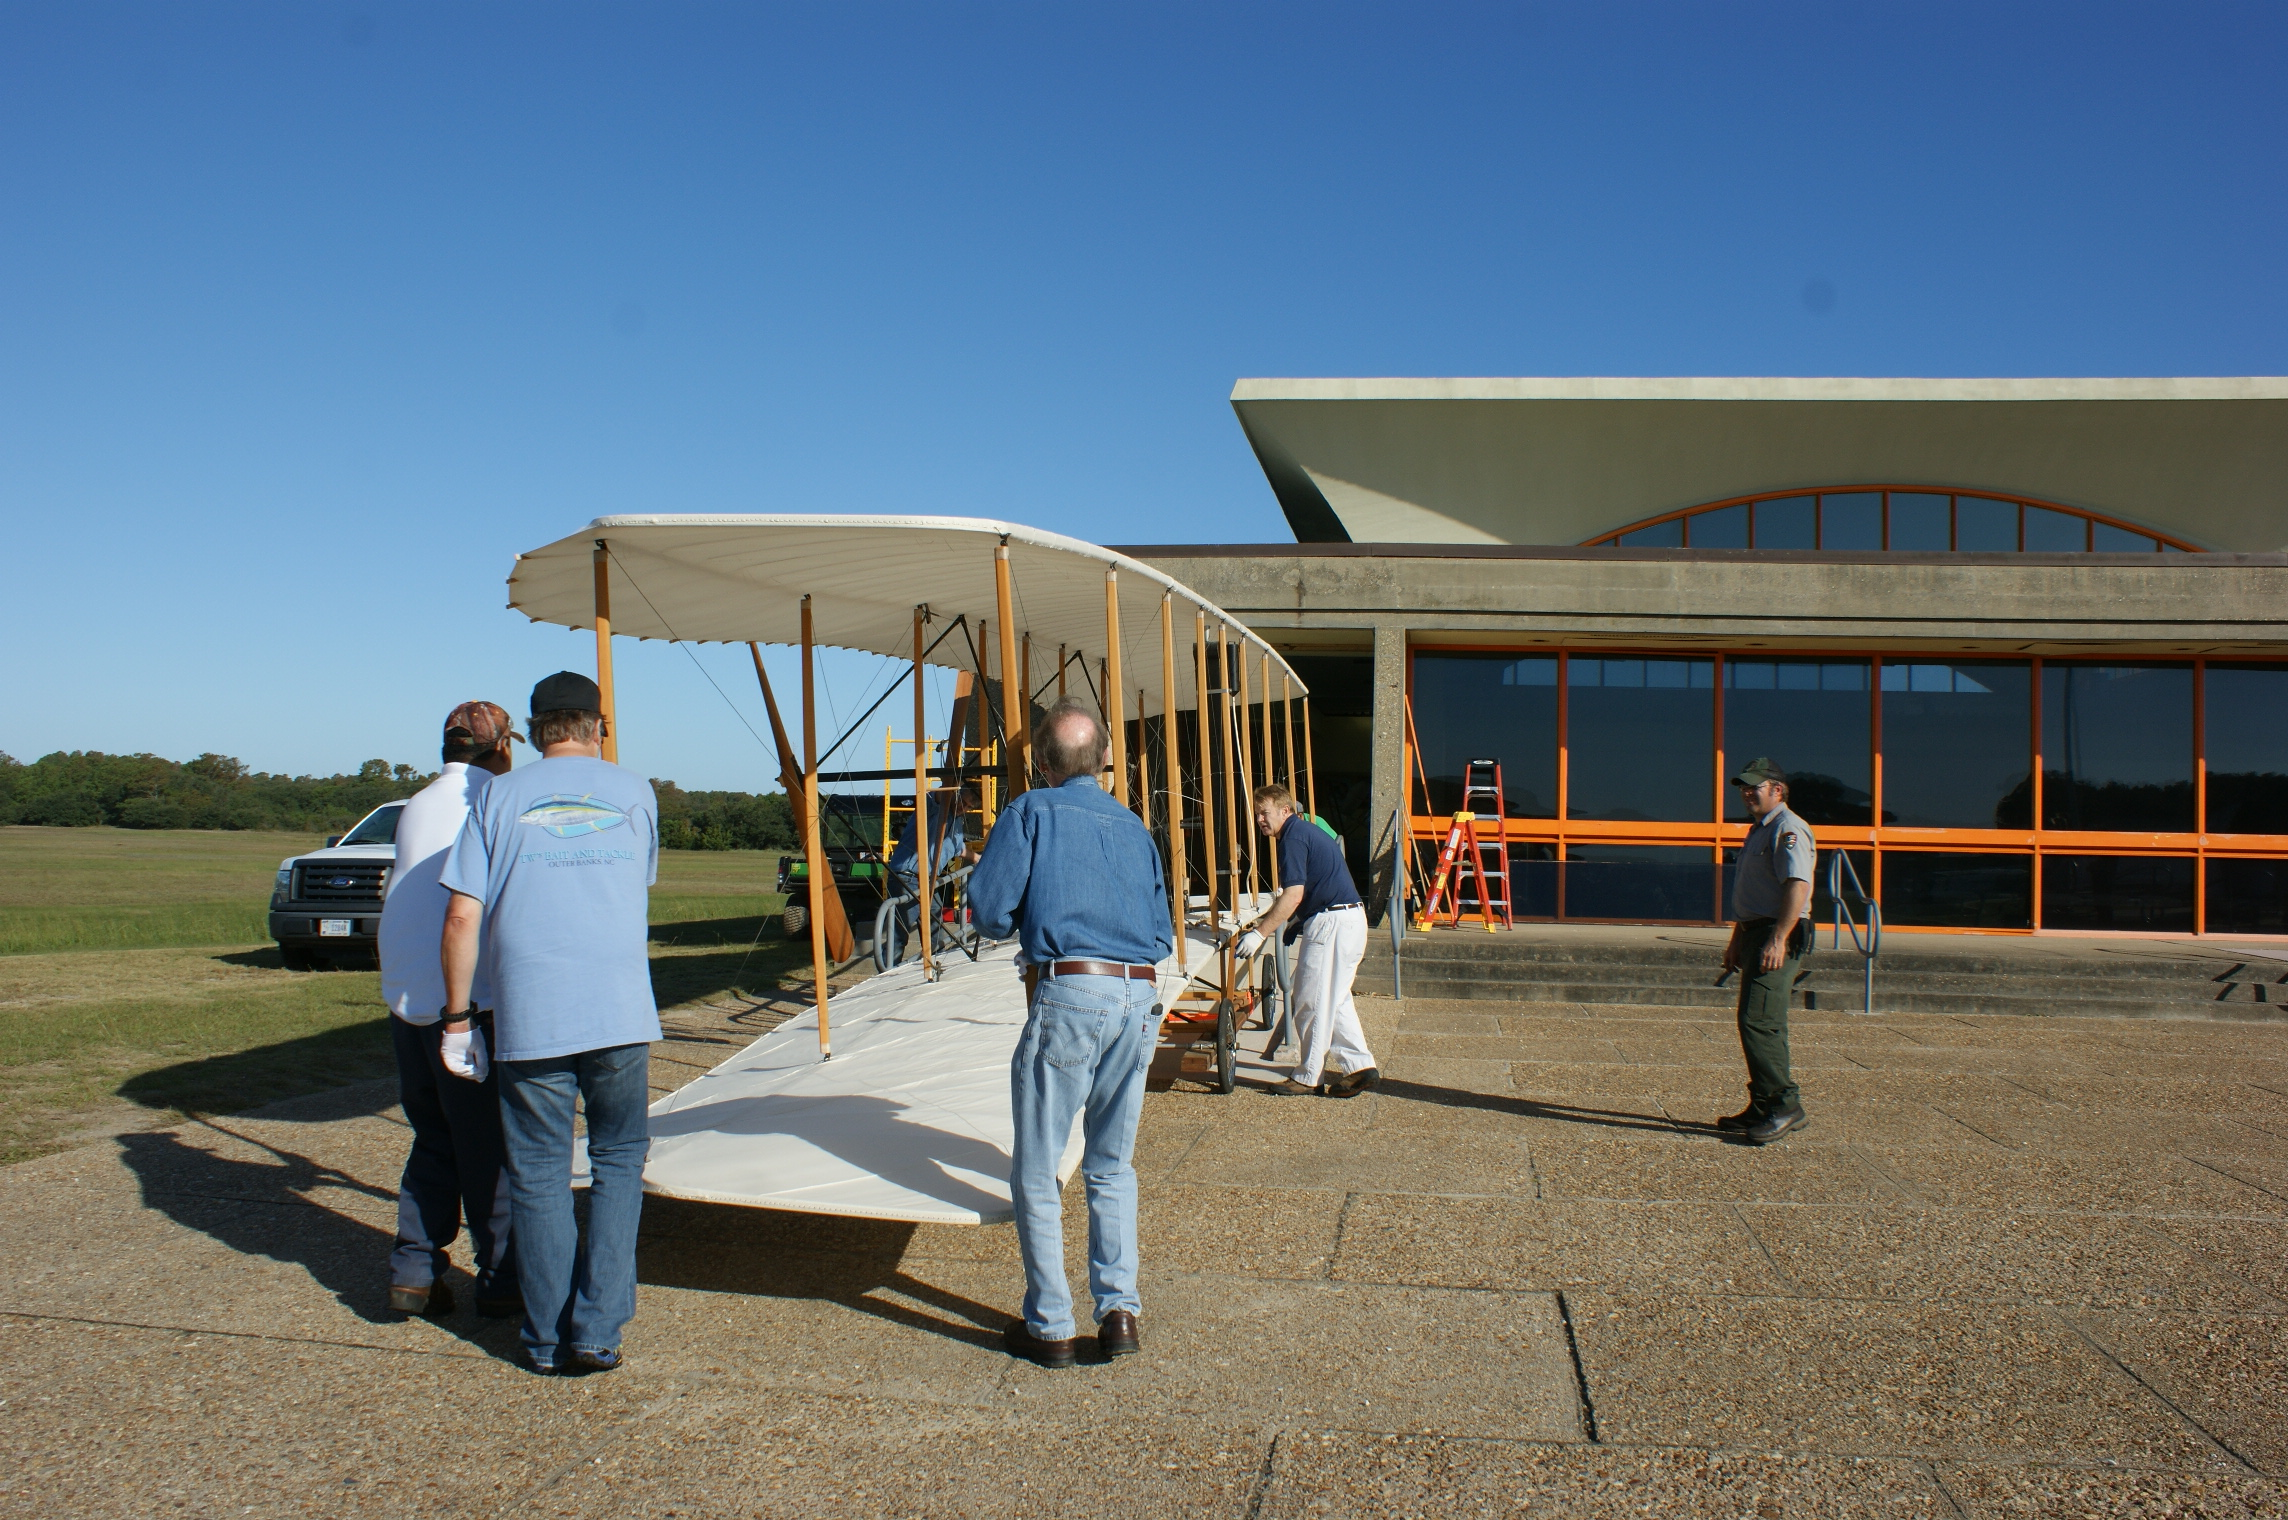 Moving crew carefully moving the Wright brothers 1903 Flyer from the visitor center.